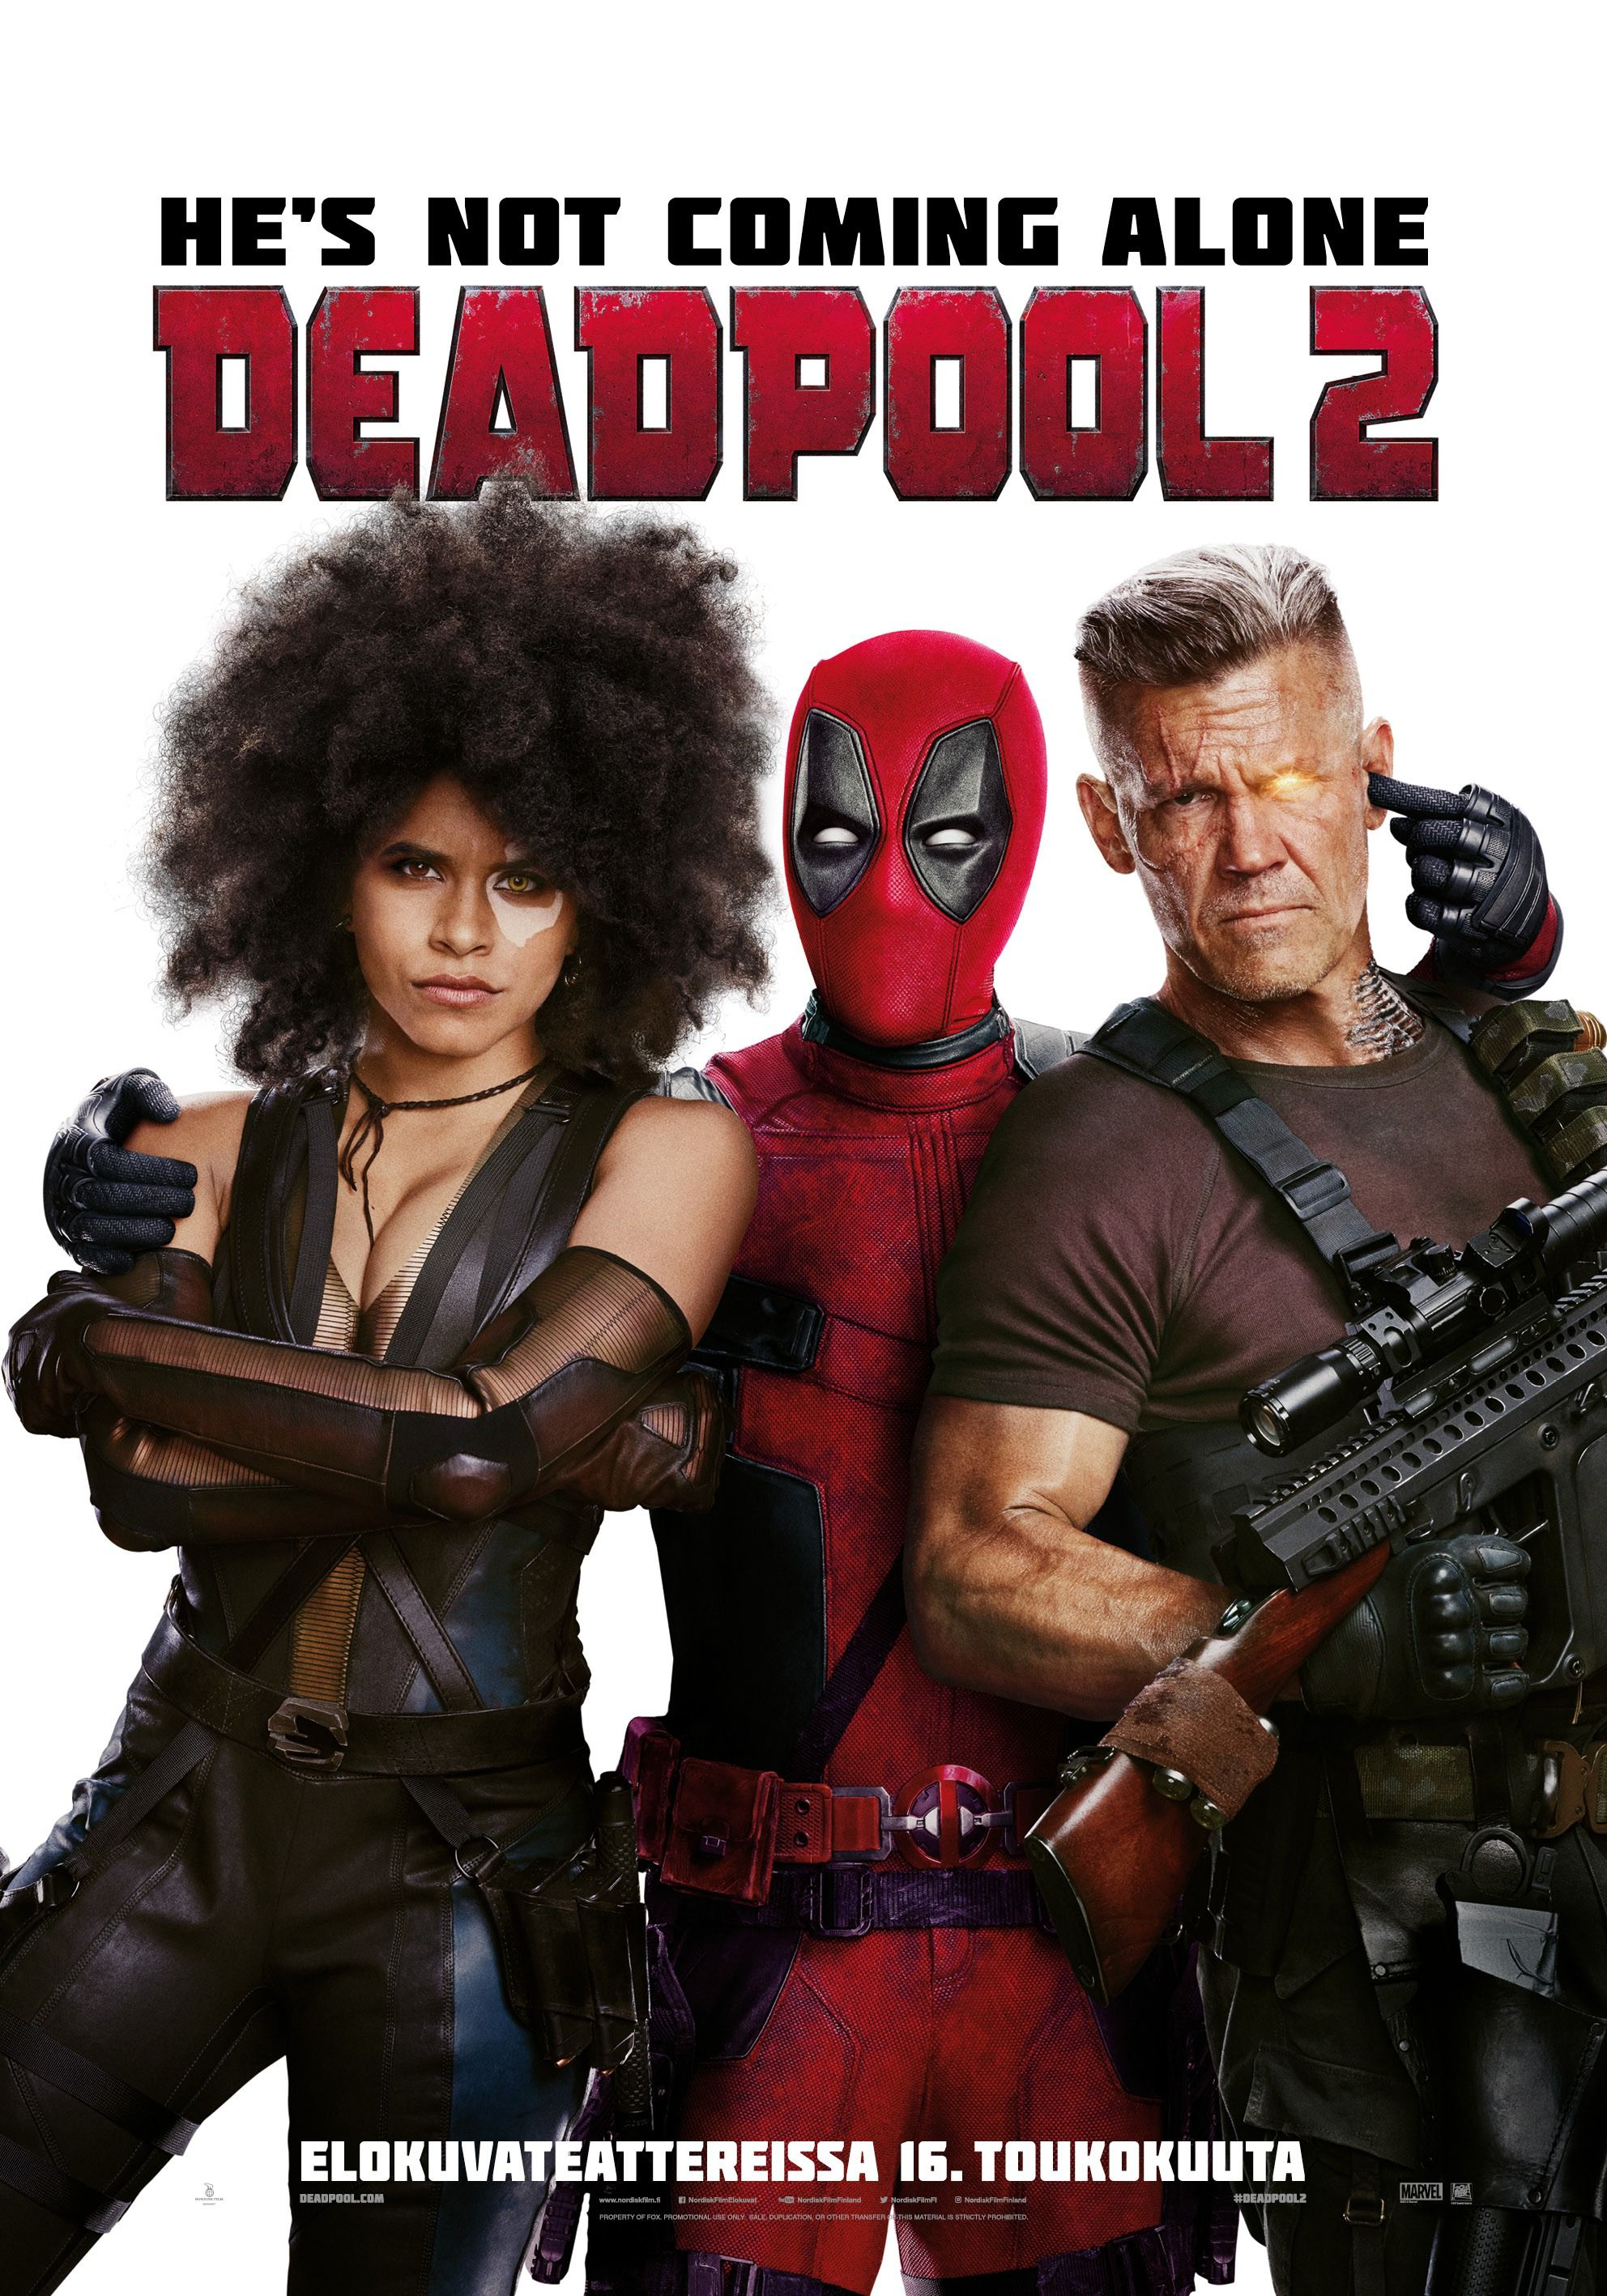 Mega Sized Movie Poster Image for Deadpool 2 (#4 of 5) | Deadpool movie, Deadpool 2 movie, Free movies online